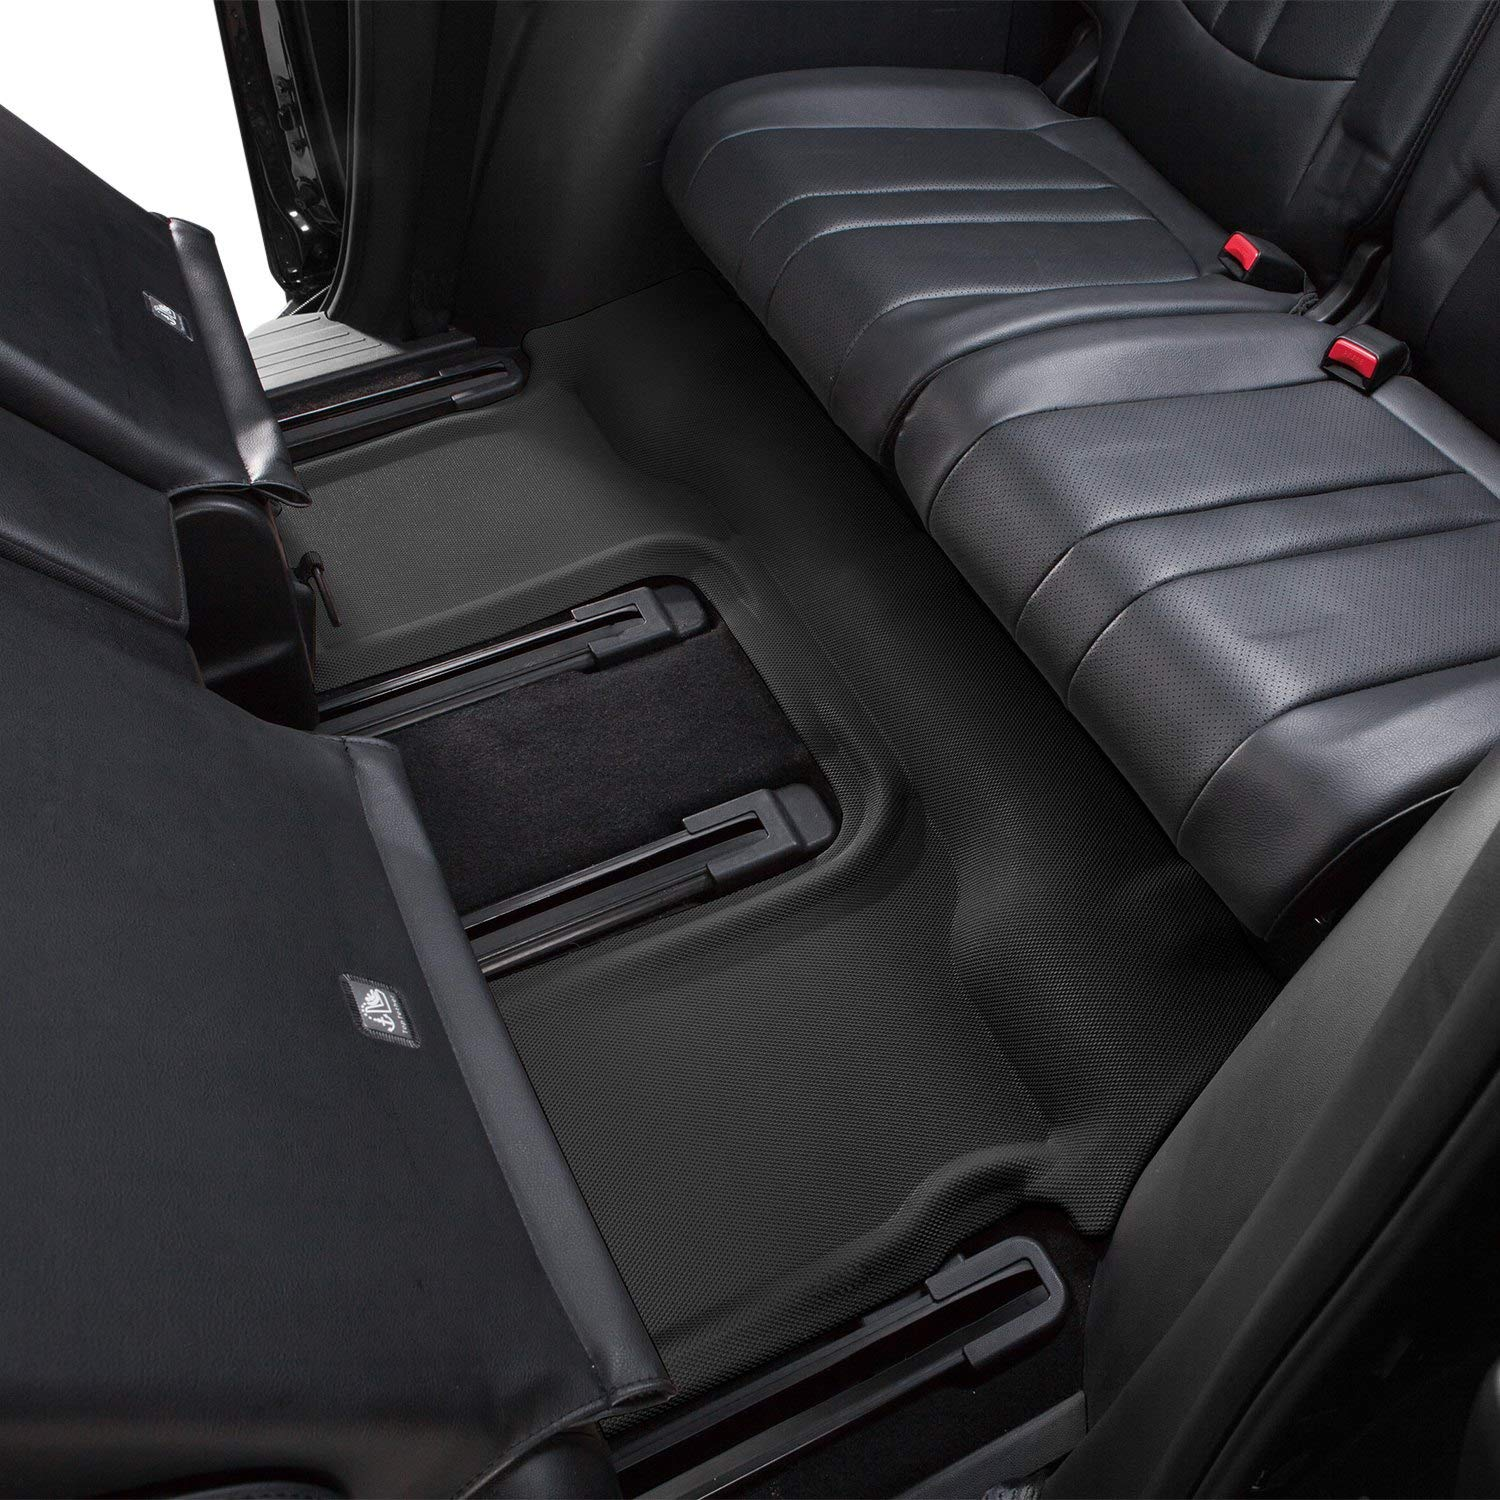 3D MAXpider L1TL00531509 Third Row Custom Fit All-Weather Kagu Series Floor Mats in Black for Select Cargo Liner for Tesla X Folding 7-Seats Models